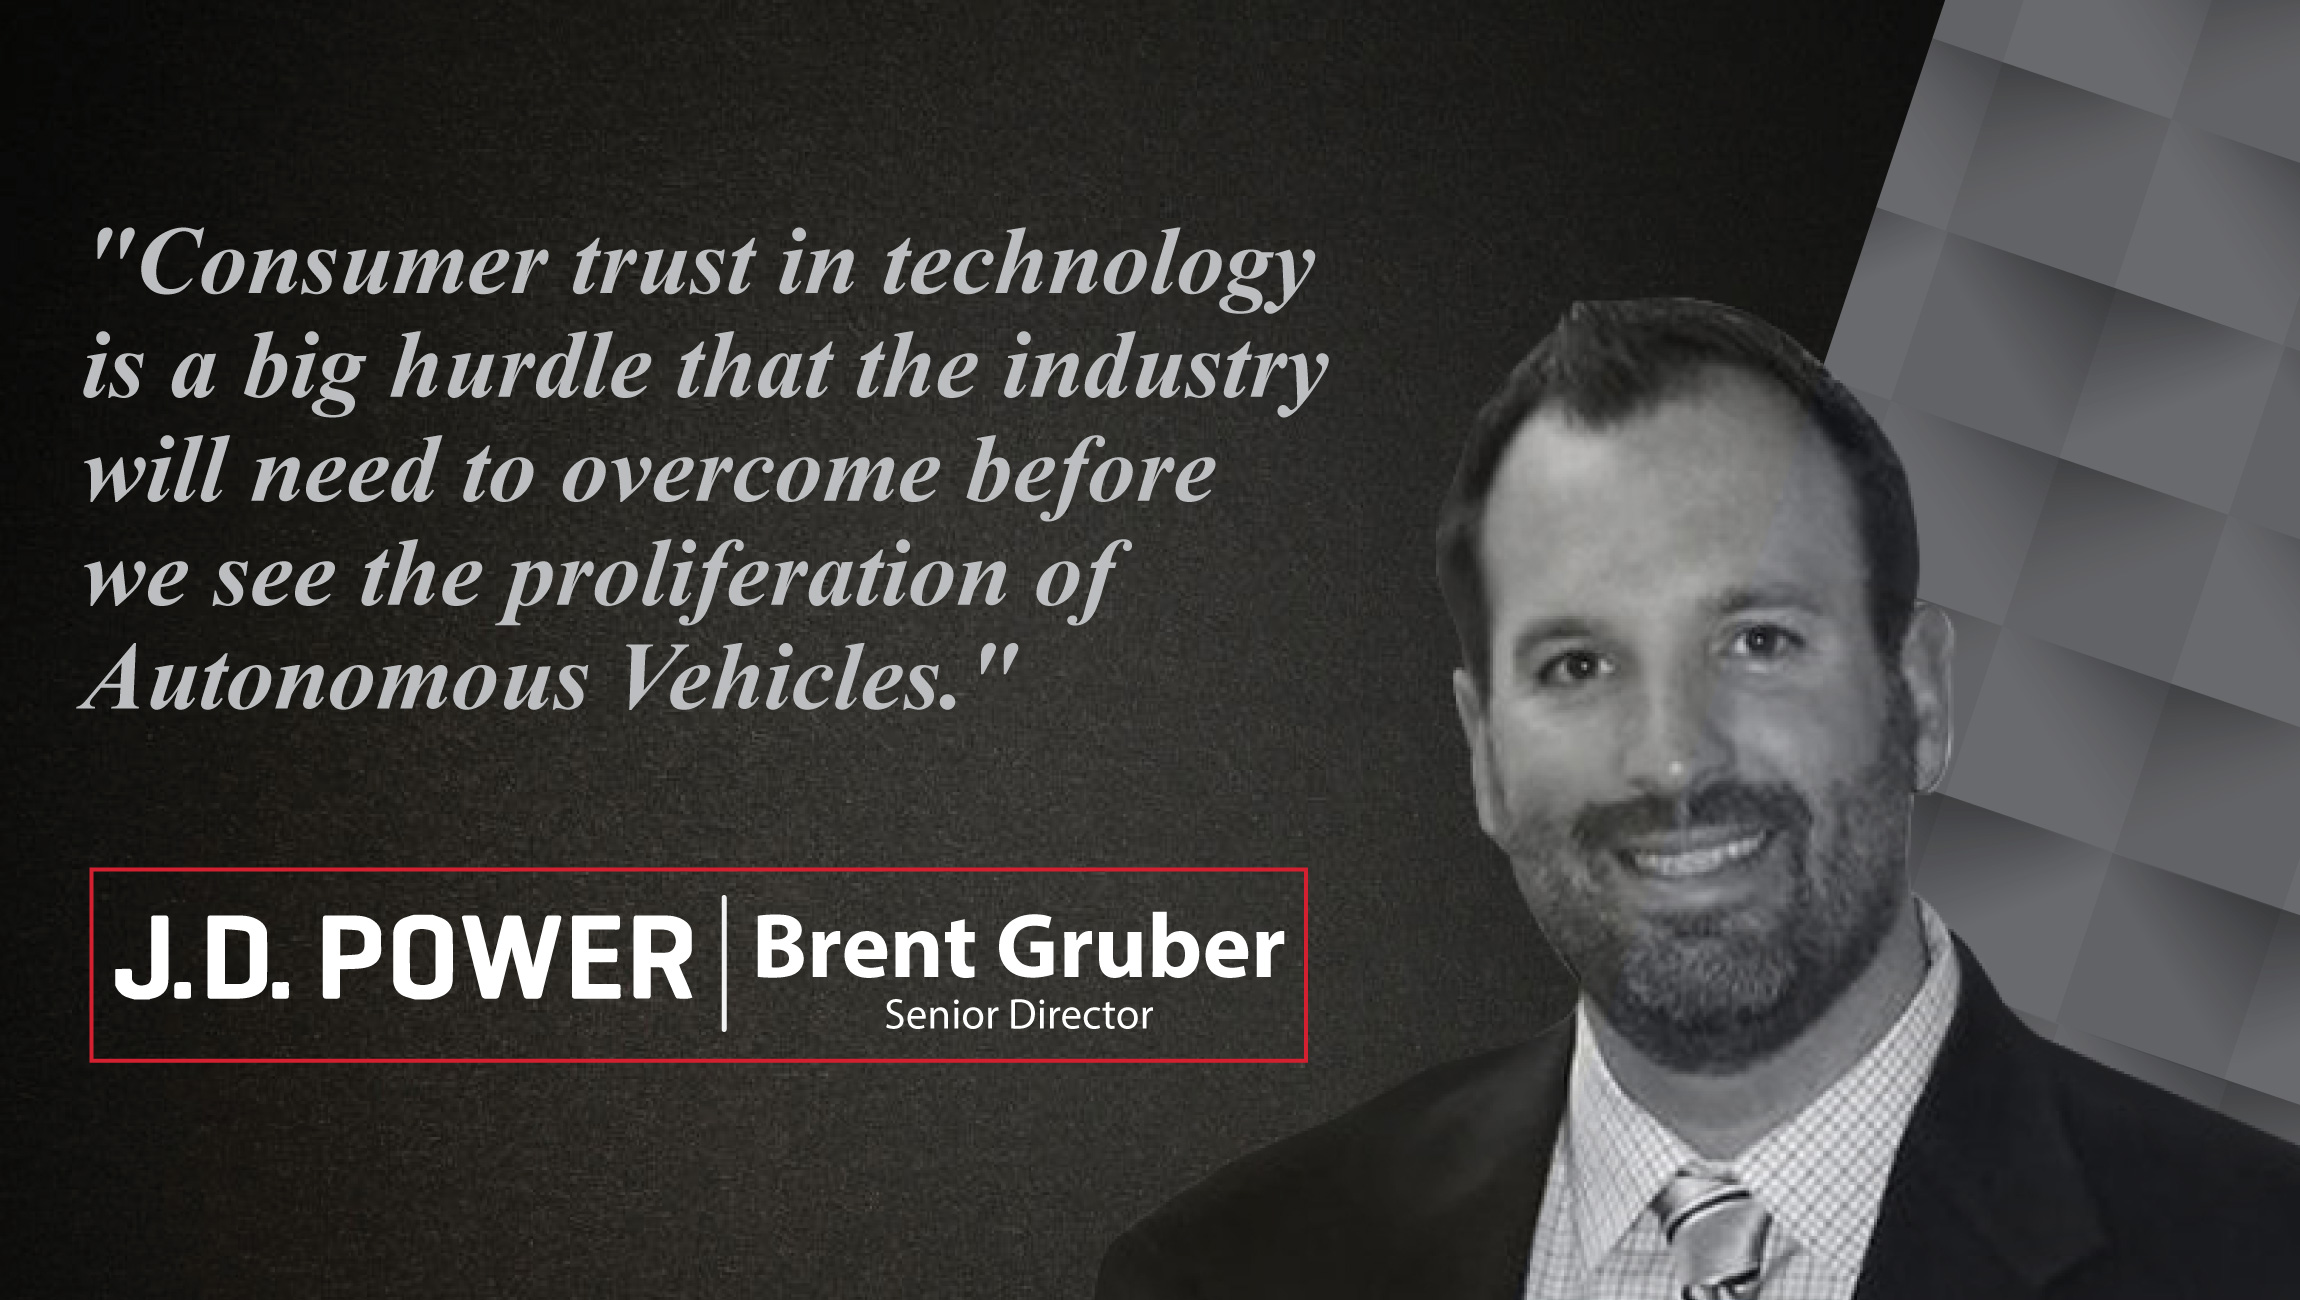 Interview With Brent Gruber, Senior Director, Global Automotive at J.D. Power_cue-card